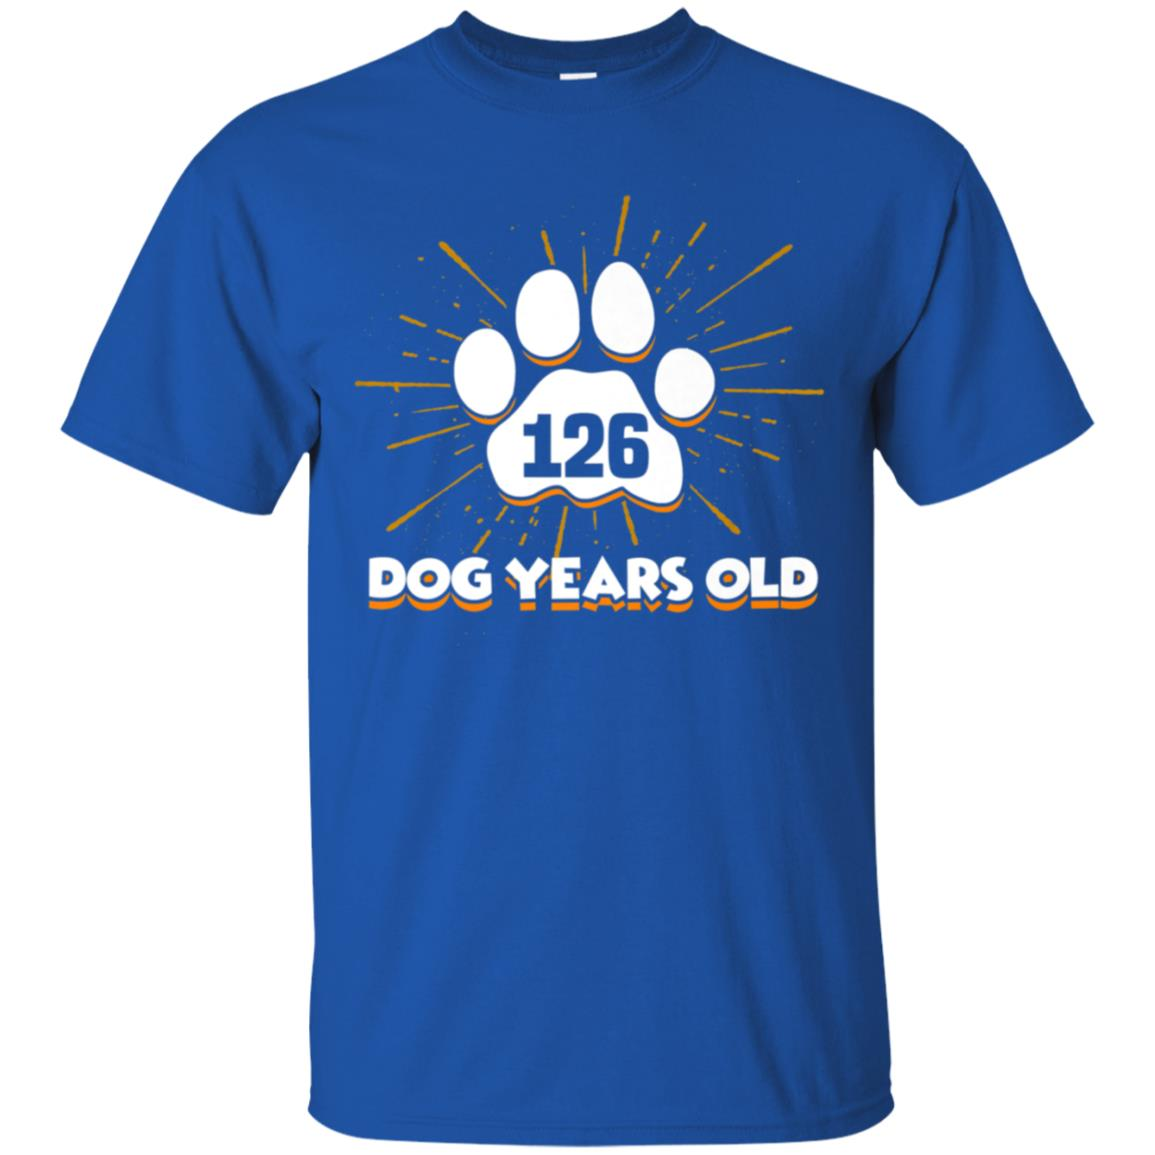 64758ec428fd Awesome 126 dogs years old t shirt 18th birthday shirt for dog lover ...